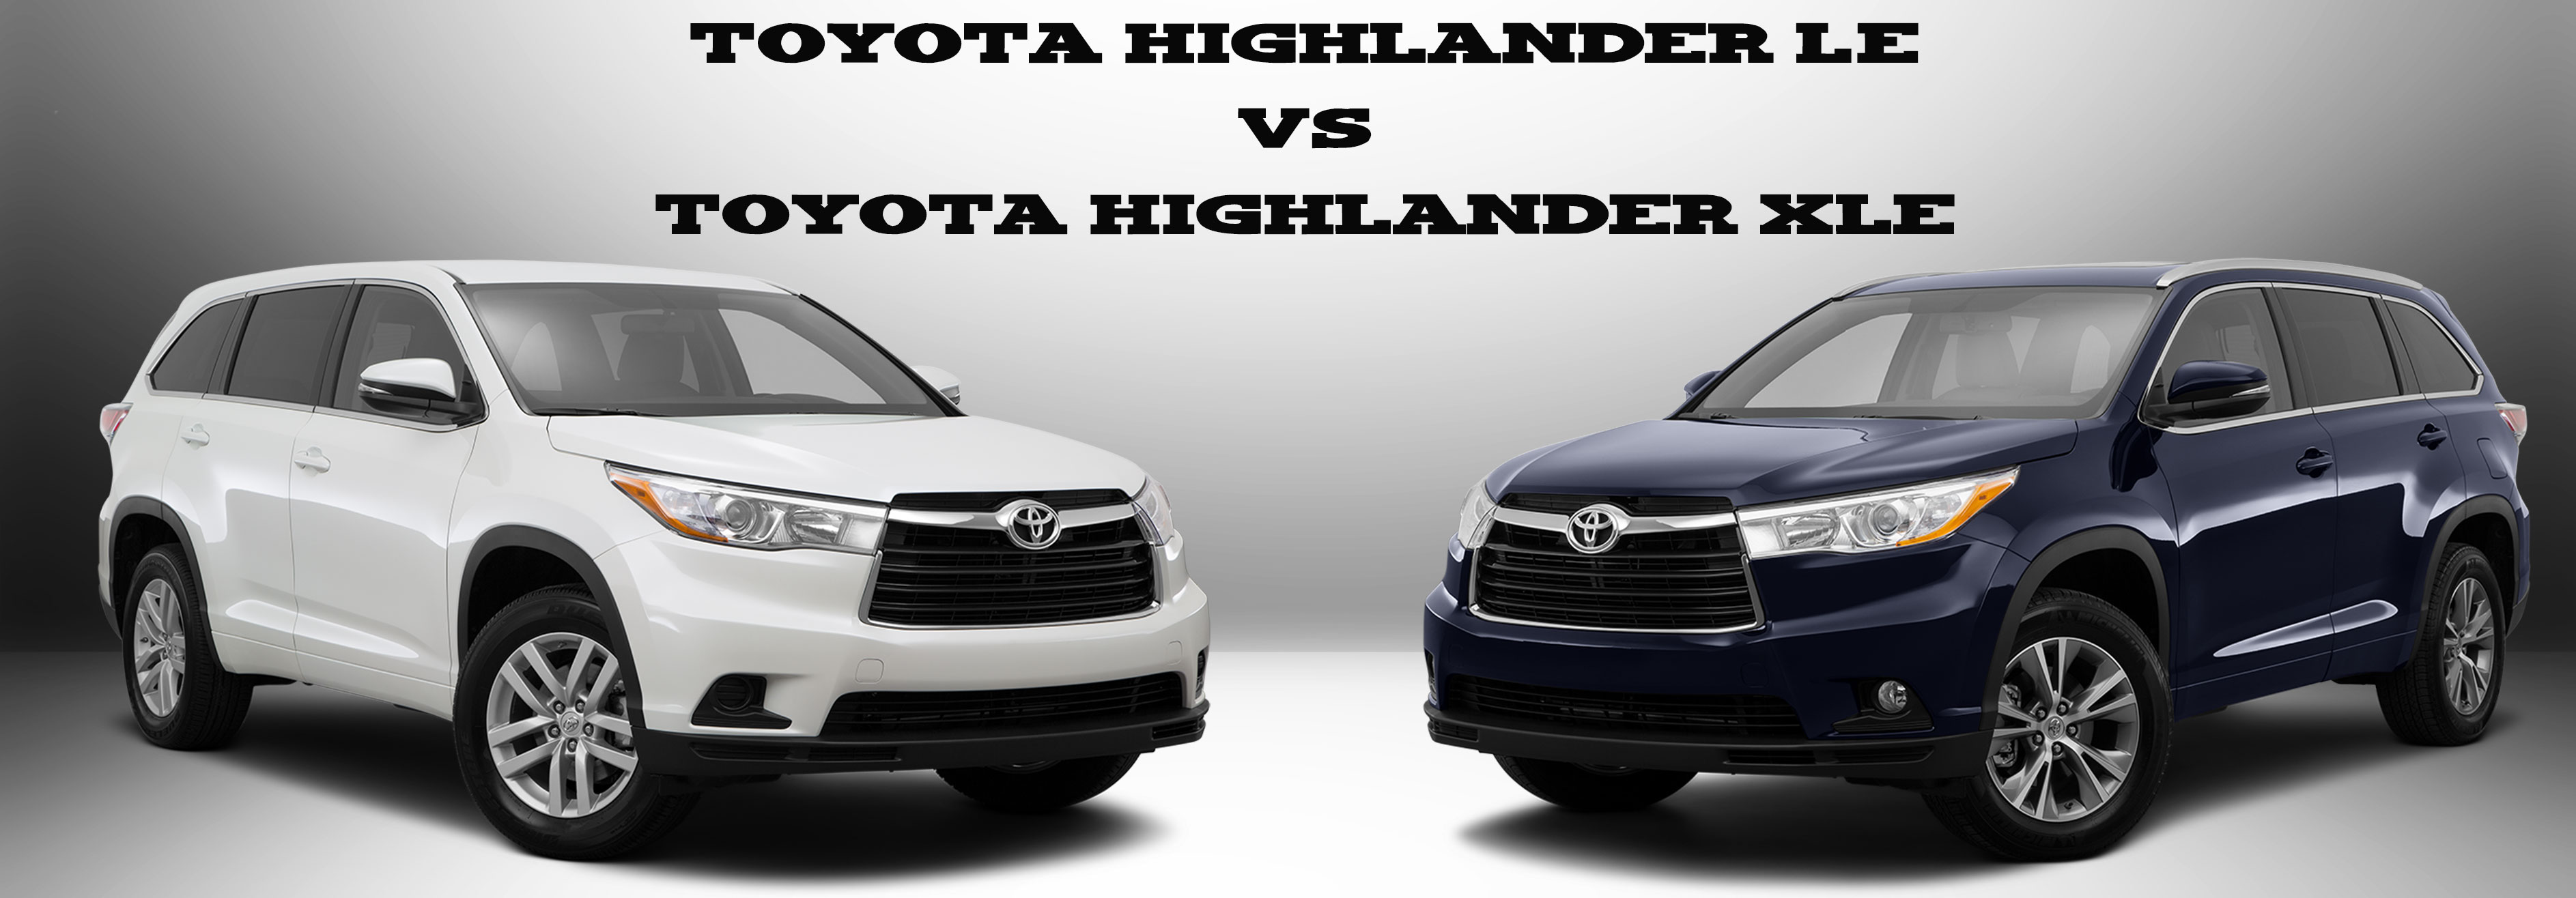 Highlander Vs 4Runner >> toyota-highlander-le-vs-toyota-highlander-xle - Limbaugh Toyota Reviews, Specials and Deals